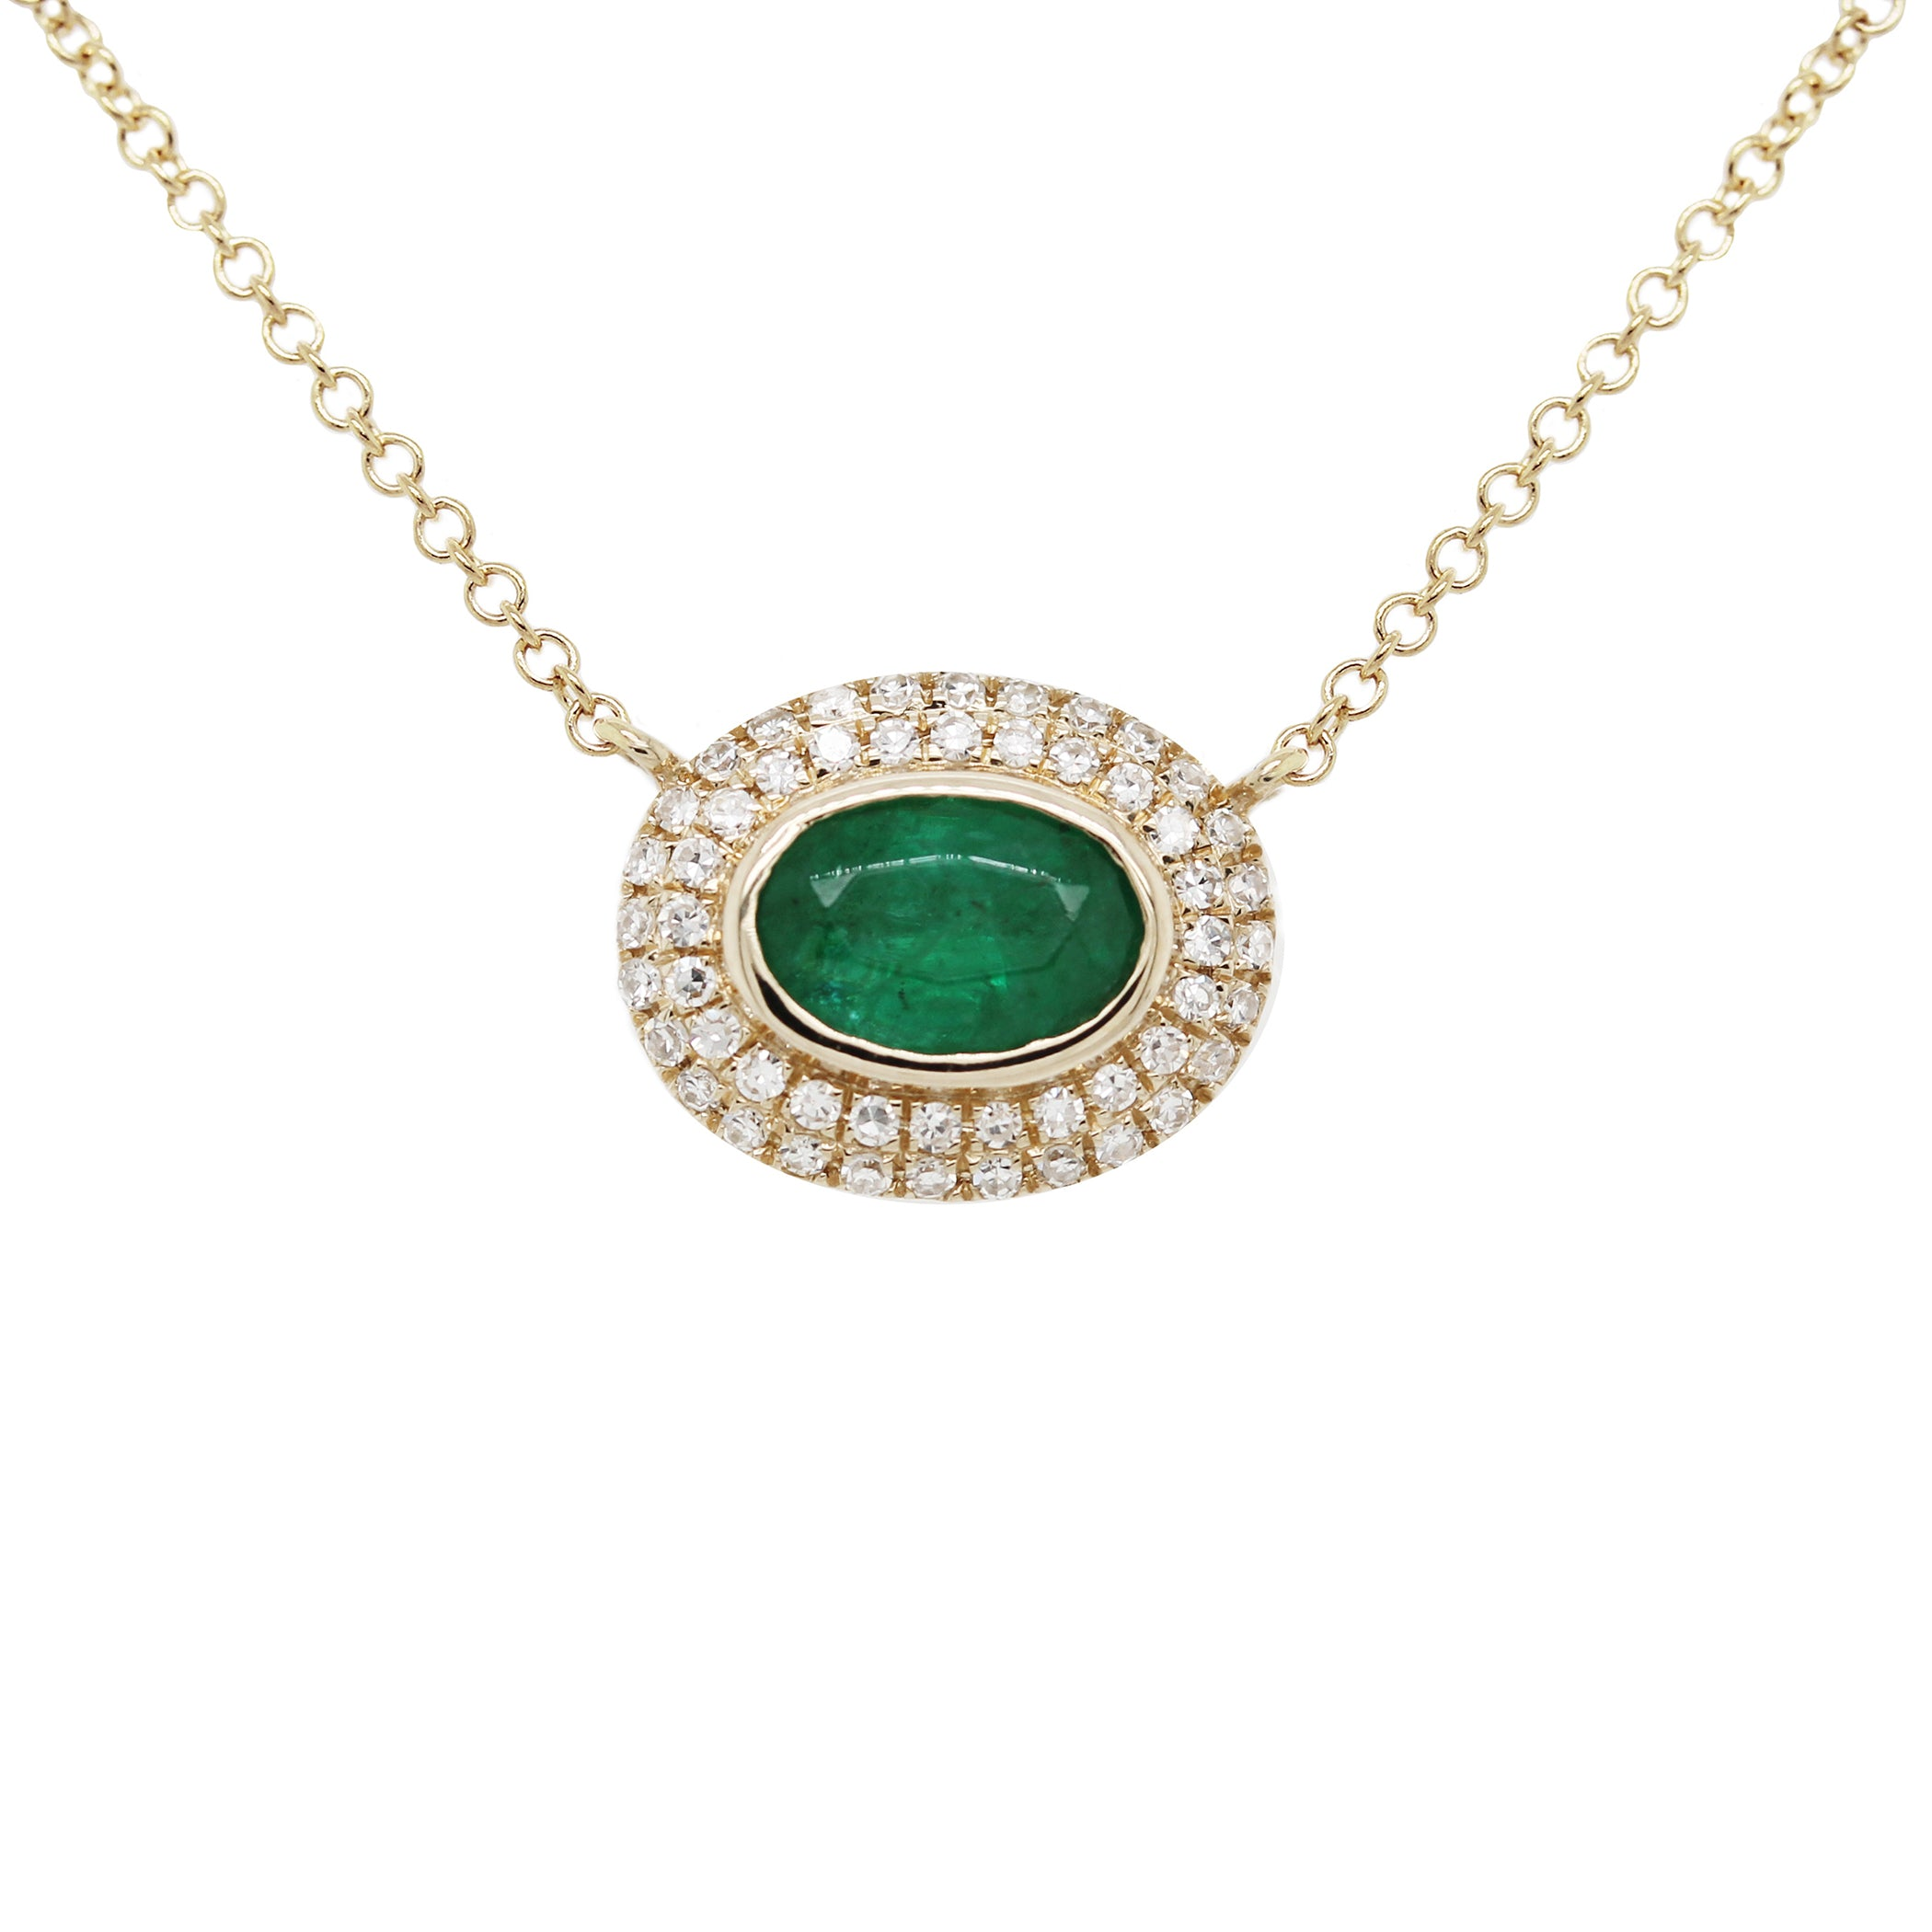 14K OVAL EMERALD WITH DOUBLE DIAMOND PAVE HALO NECKLACE